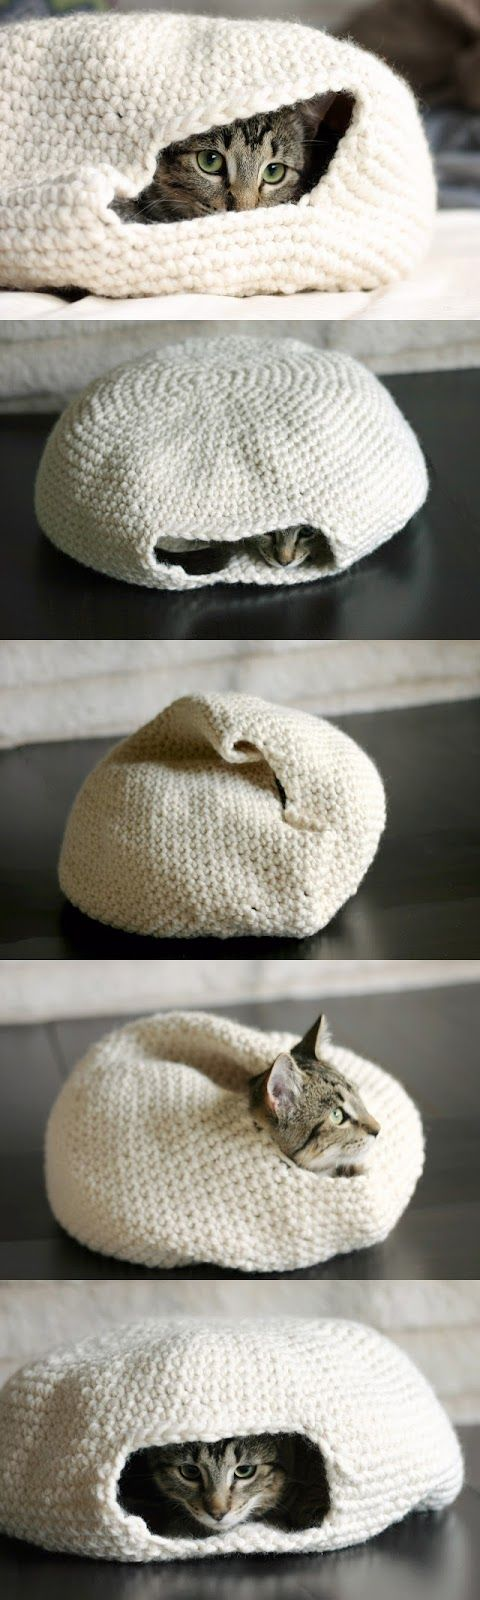 Quick, someone who can crochet, make this for me. I'll pay for it!! Crochet cat bed- it's like a bag and a bed all in one.: